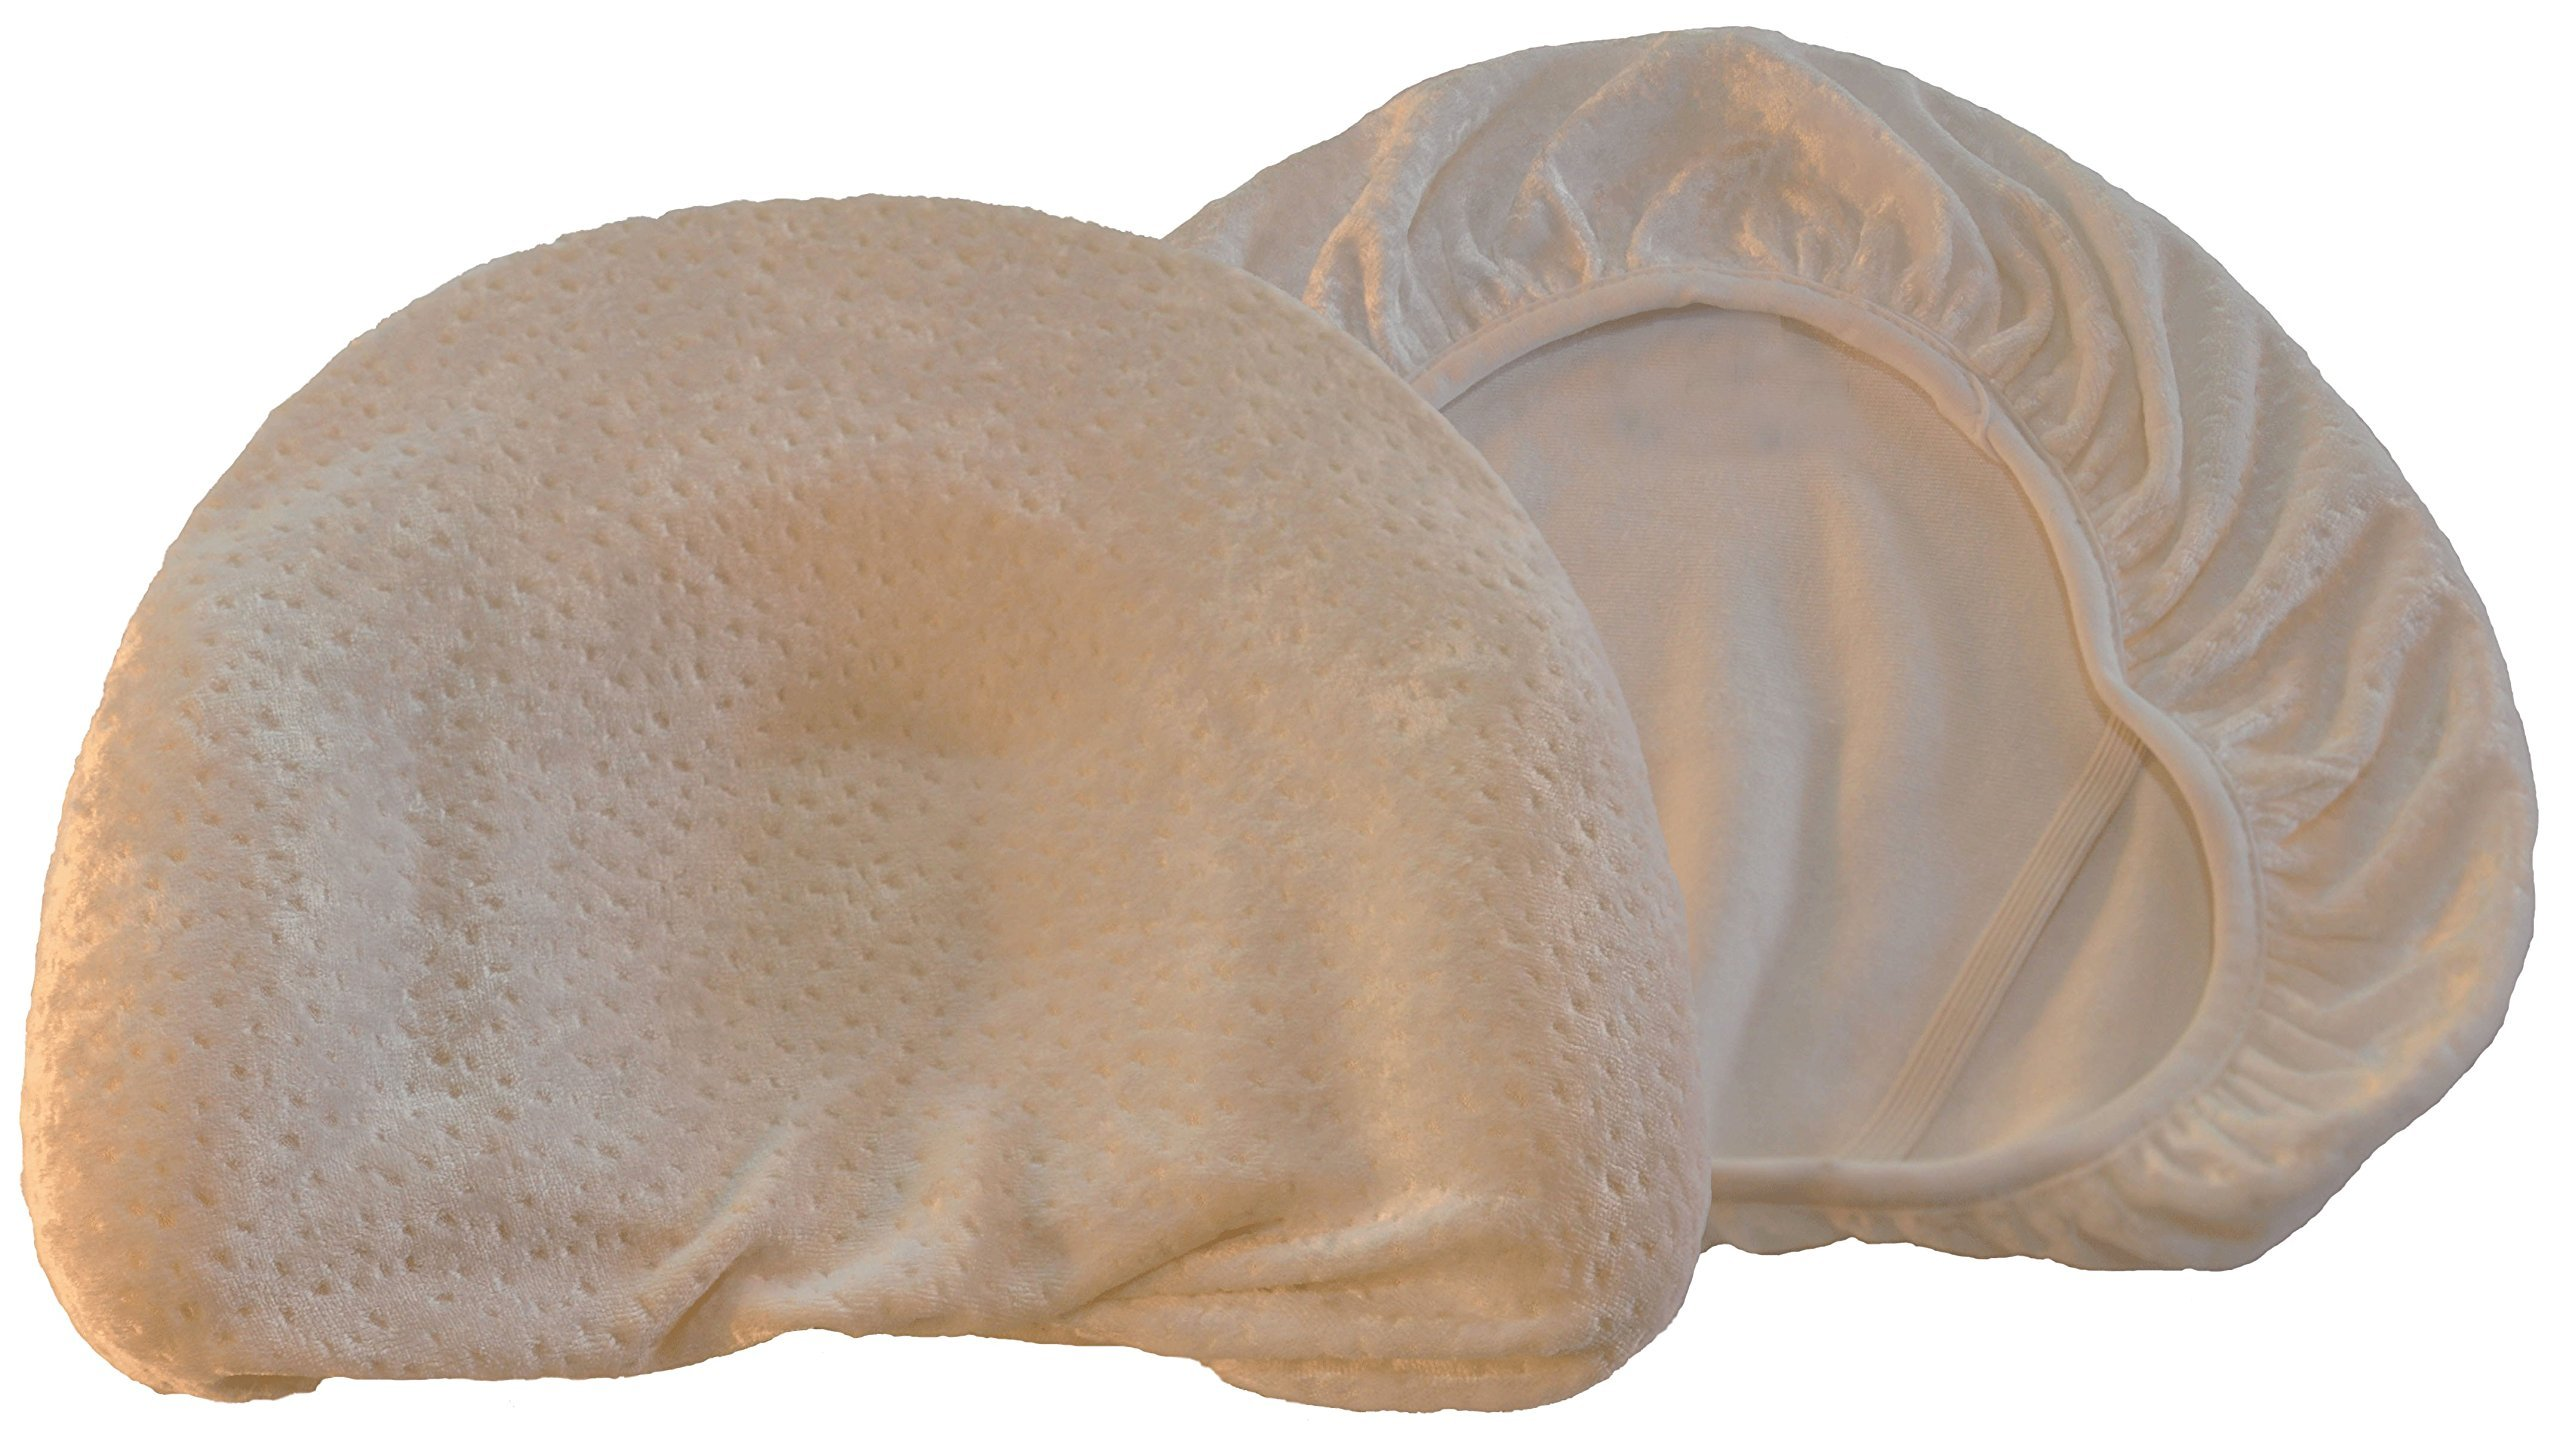 Baby Head Shaping Memory Foam Pillow & Pillowcase. Luxury Baby Shower Gift to KEEP a baby's head round. Prevent Plagiocephaly. (Extra Pillowcase) by Baby Love USA (Image #2)